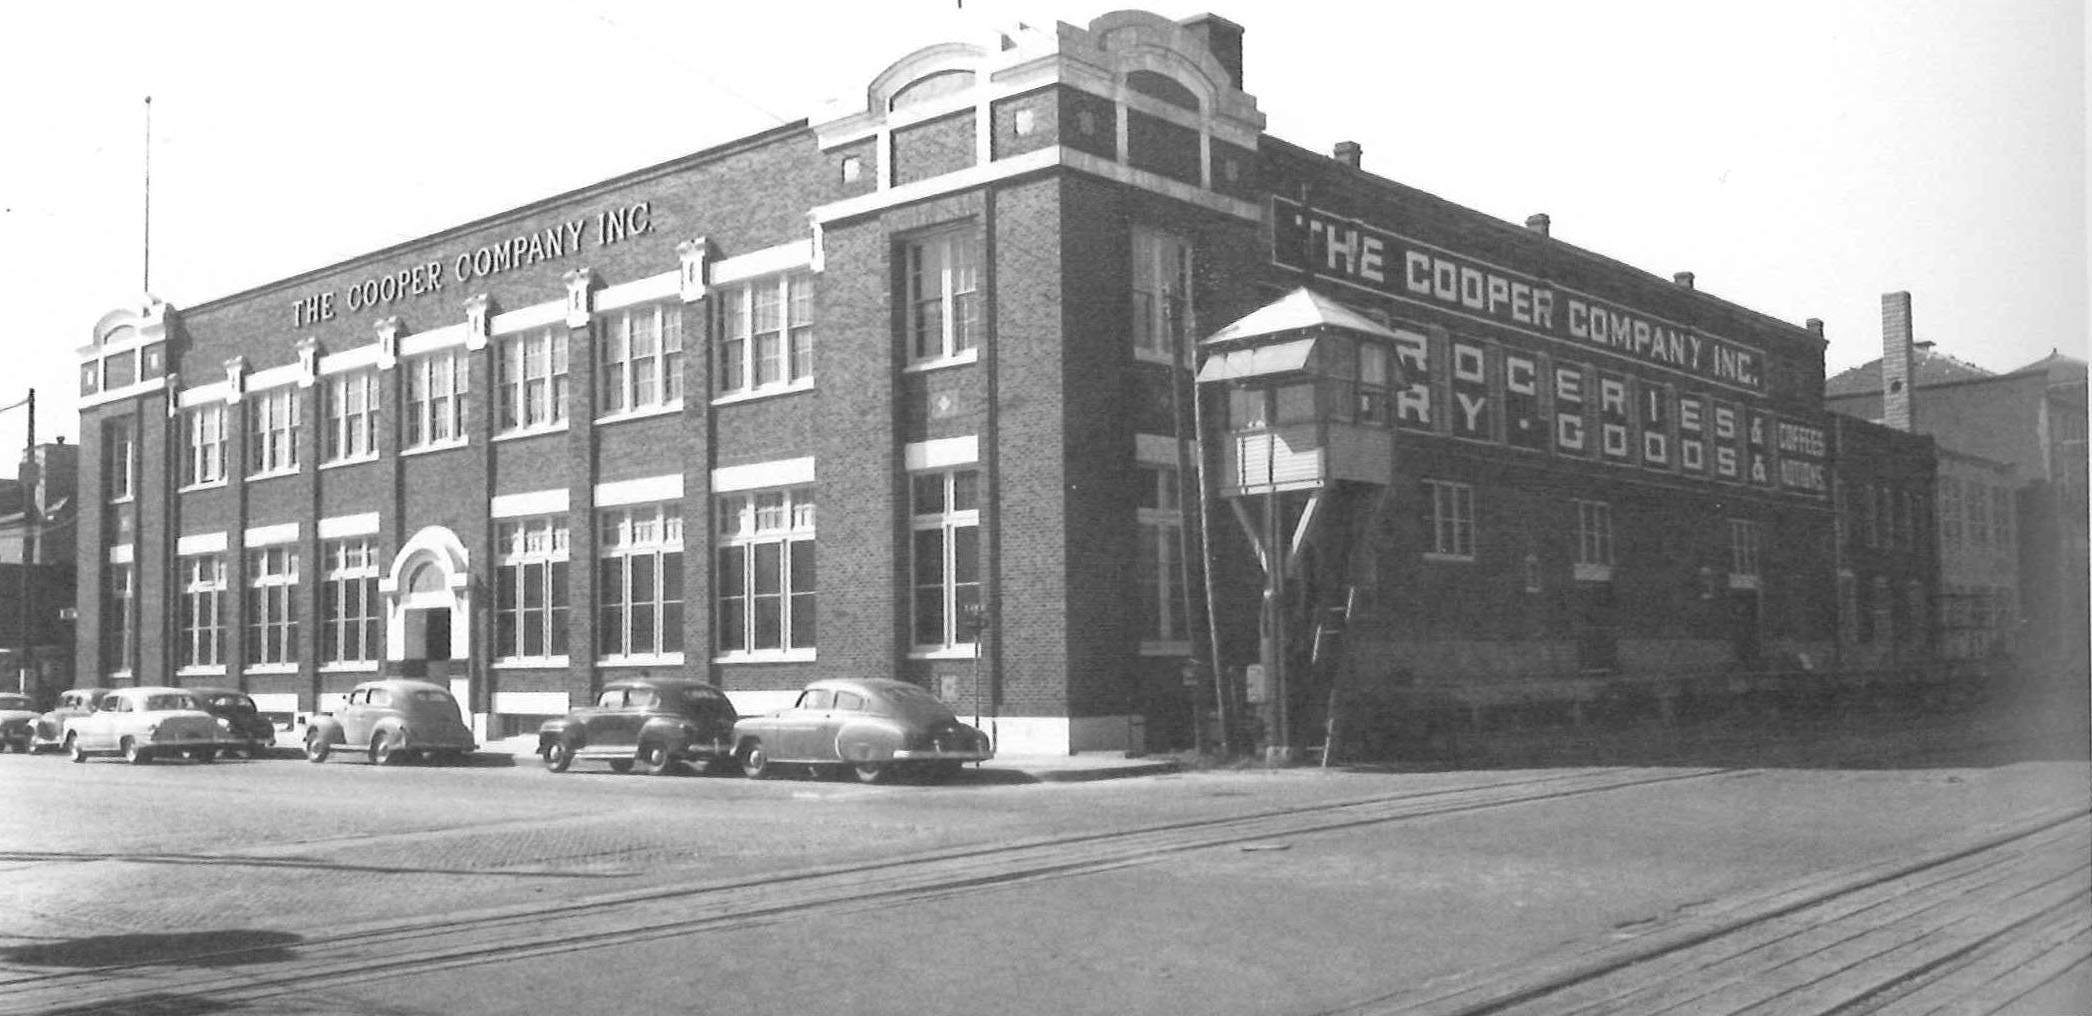 Cooper Grocery Co.